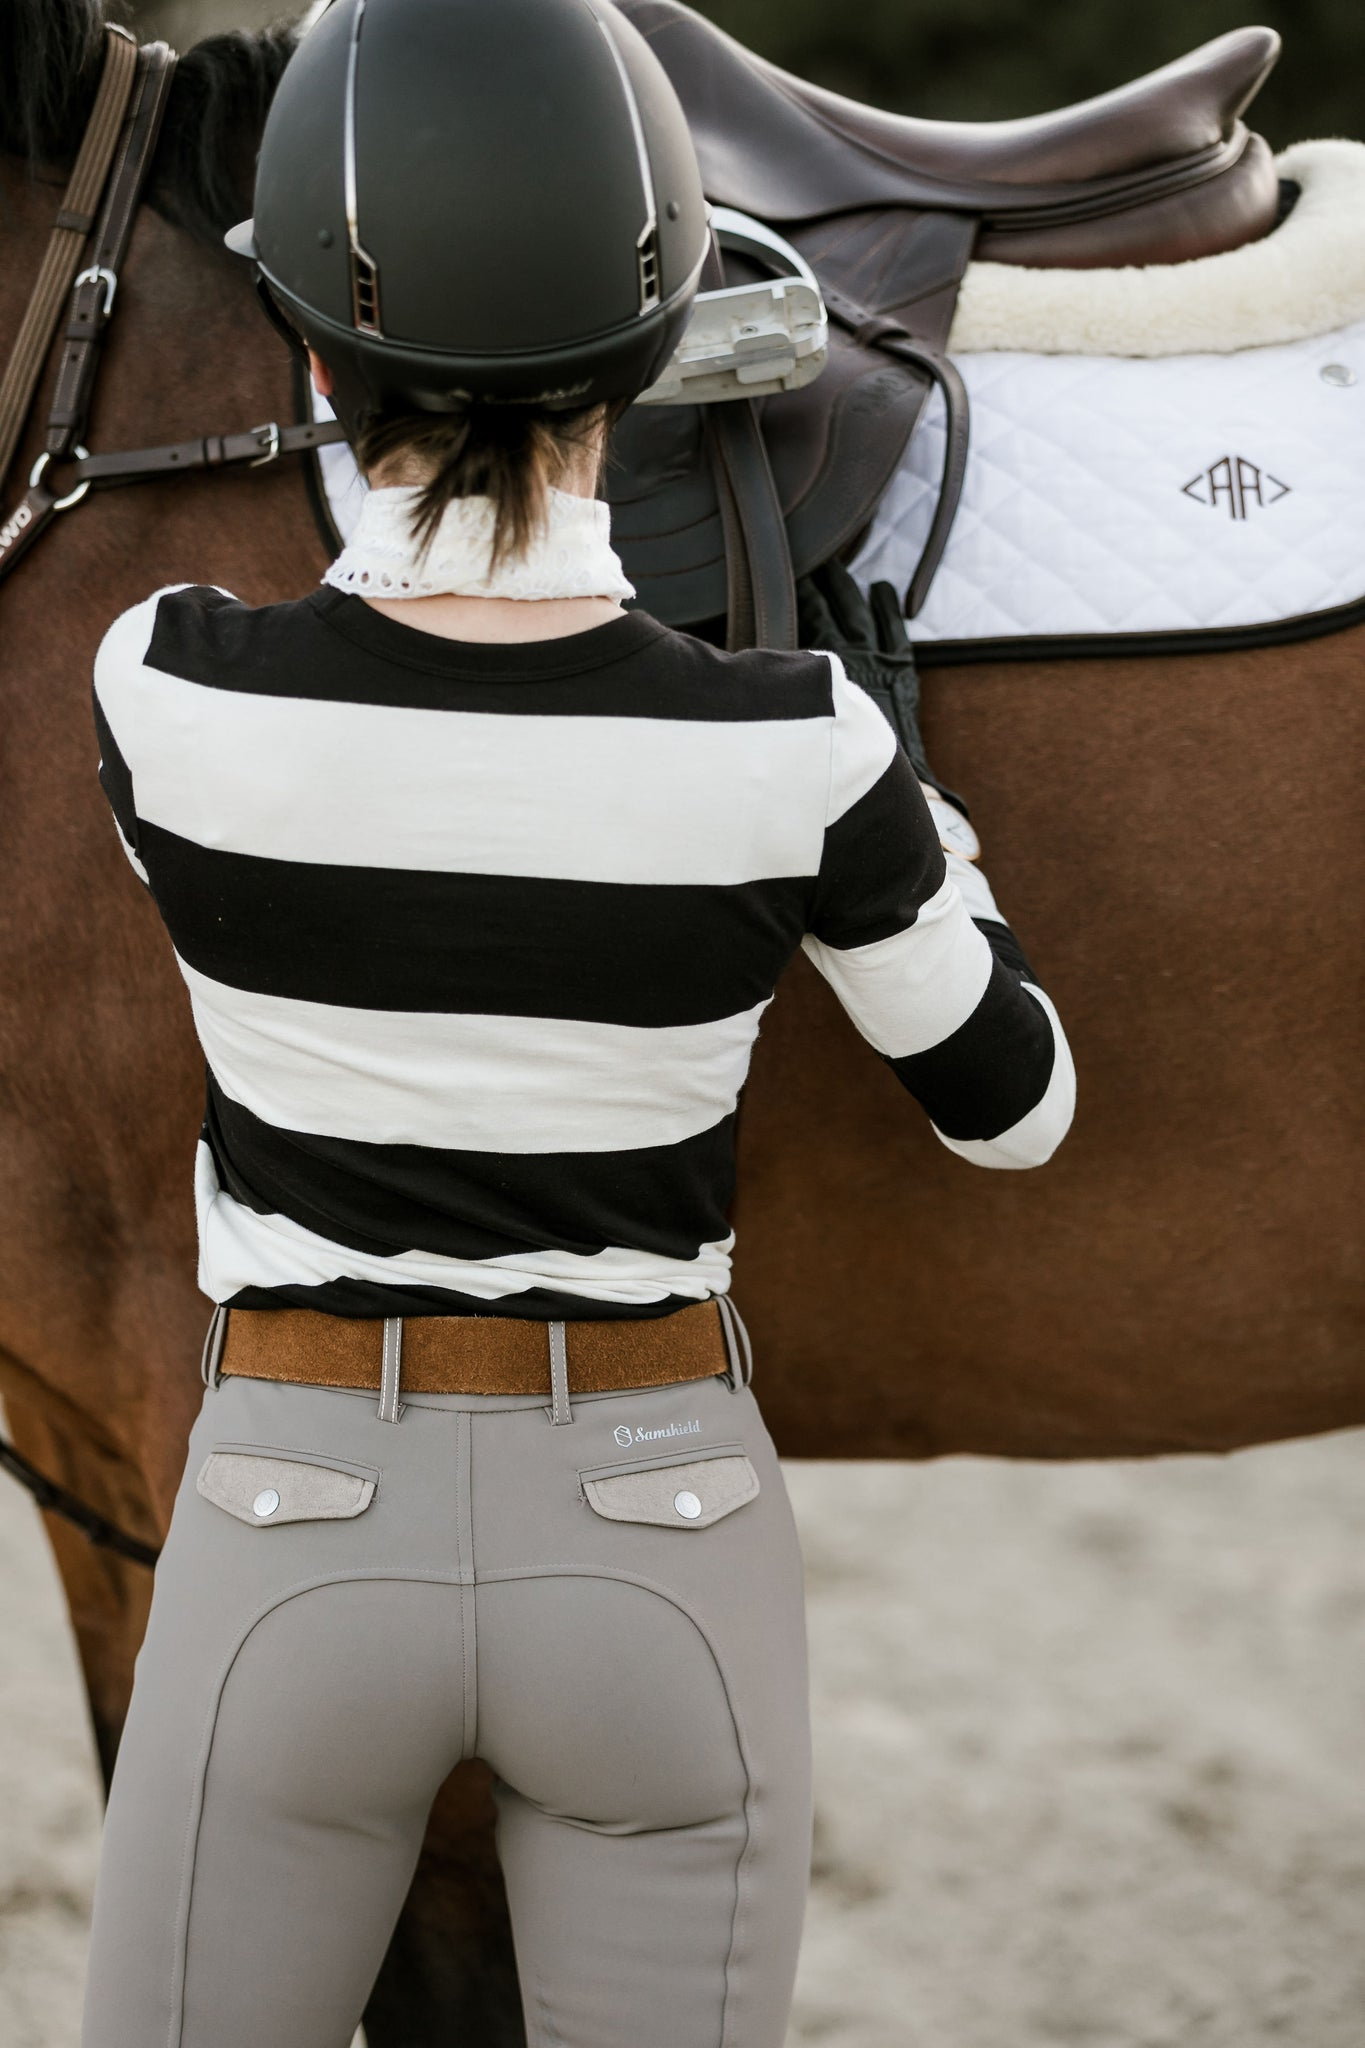 7 Breeches 7 Days I Tried Everything From Old Faithfuls To New Tech Noelle Floyd